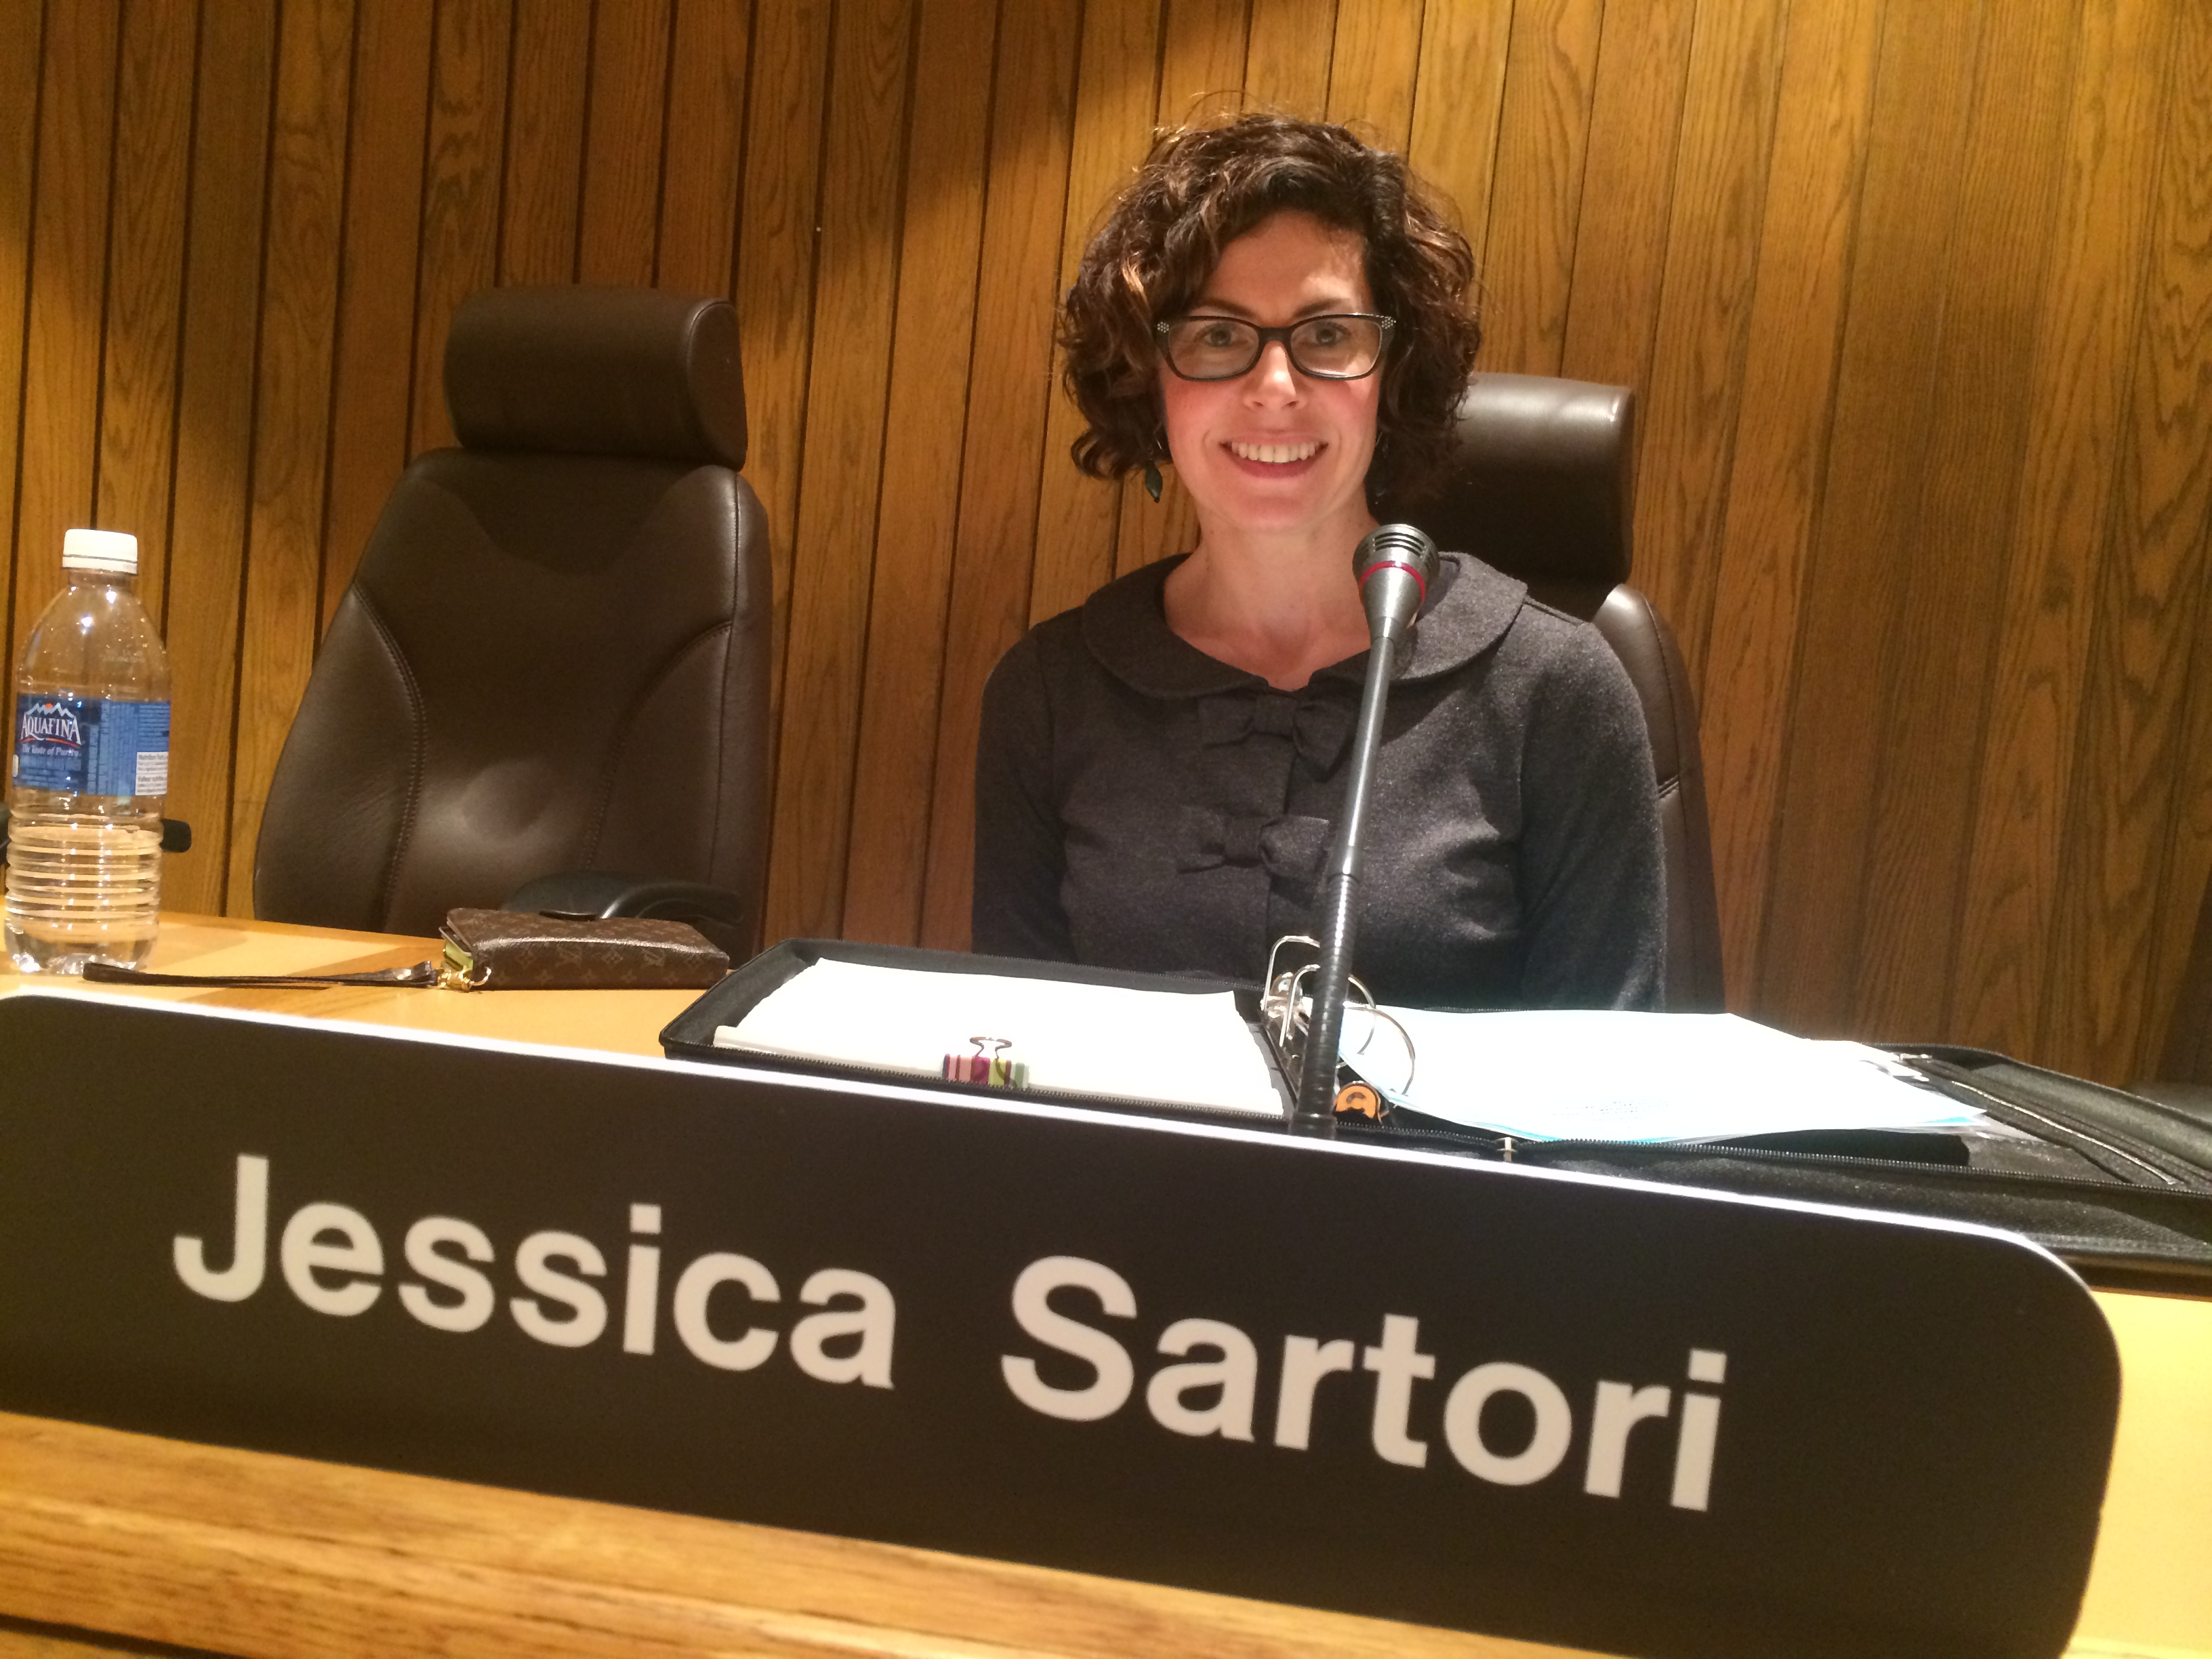 Jessica Sartori, trustee for the Greater Essex County District School Board, is seen in her seat at the board table on December 2, 2014. (Photo by Ricardo Veneza)